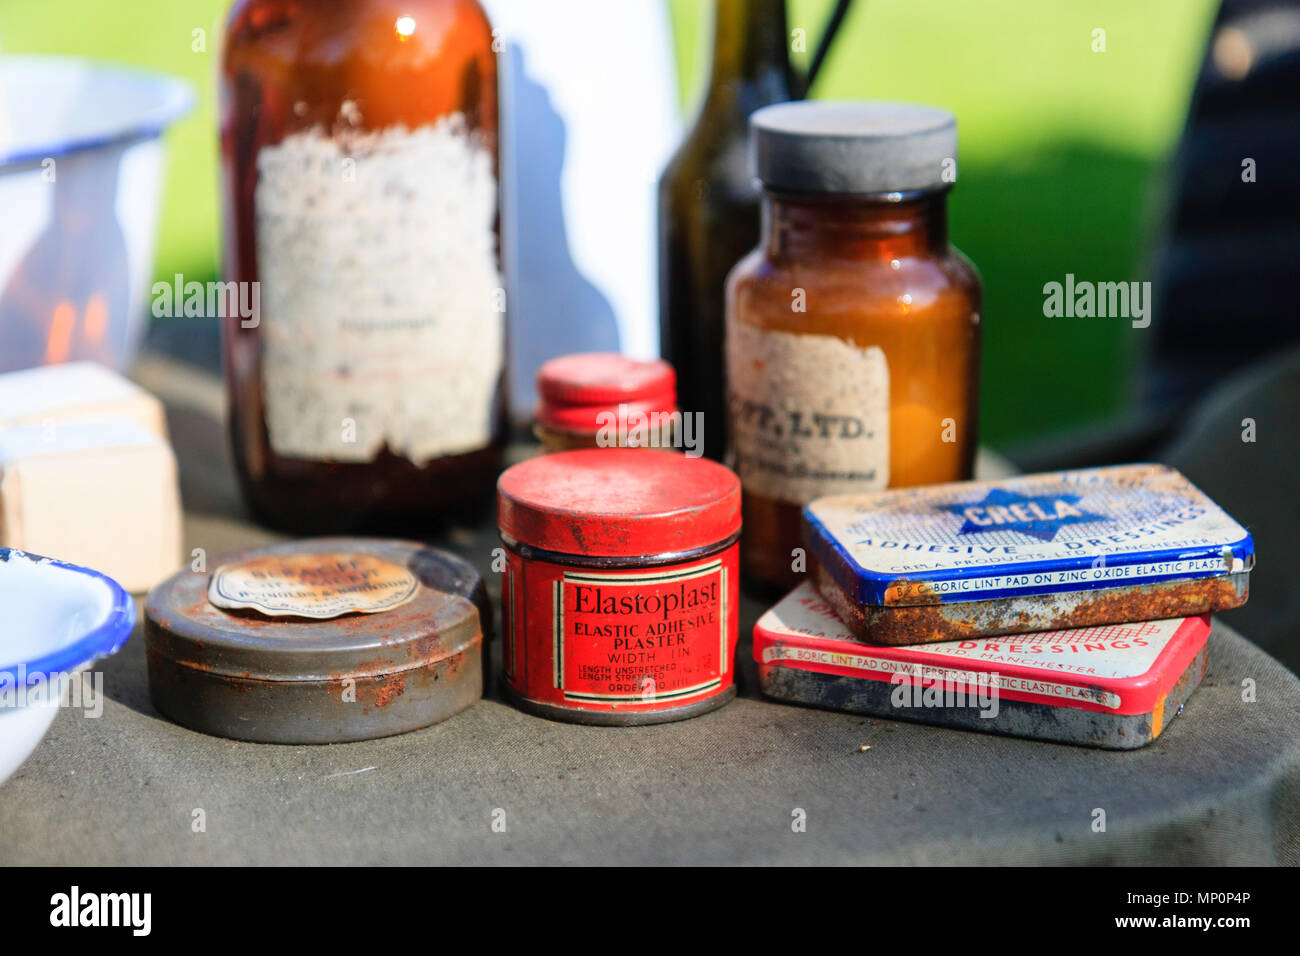 Various World war two medical items set out on a table, elastoplast plasters, tinned lint pads, other items. Narrow focus. - Stock Image